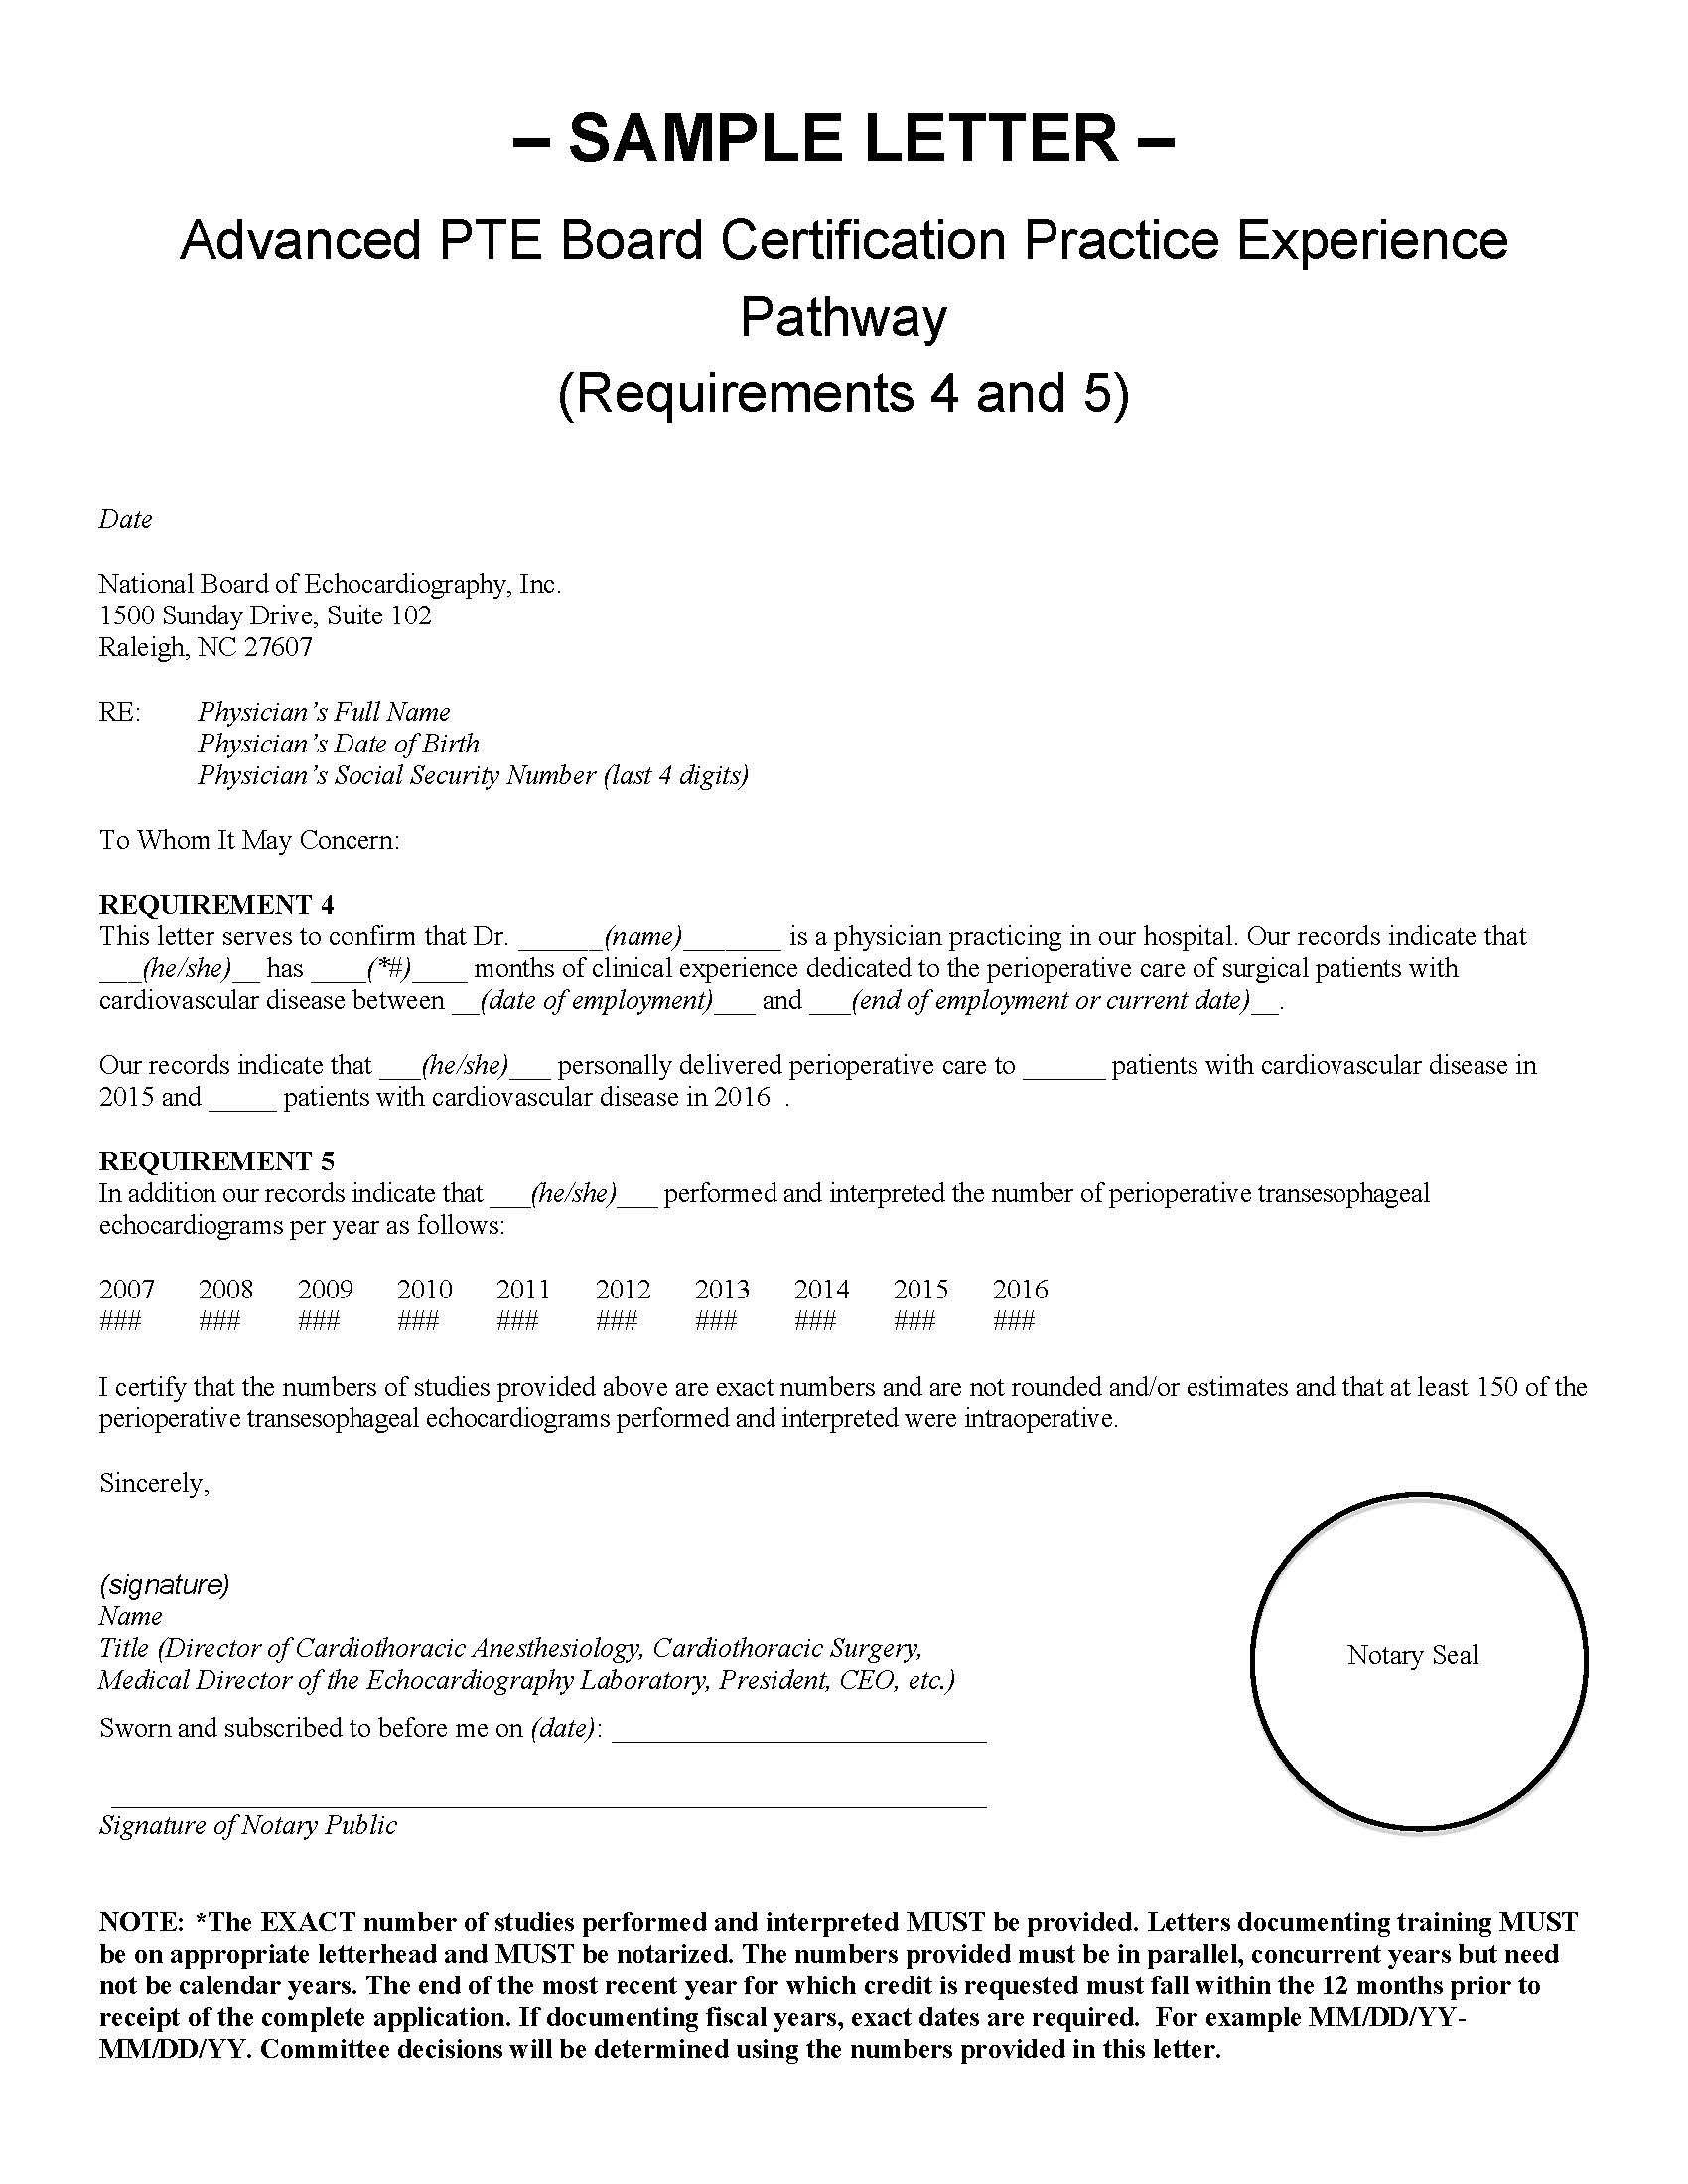 Certification sample letters practice experience pathway 1betcityfo Images